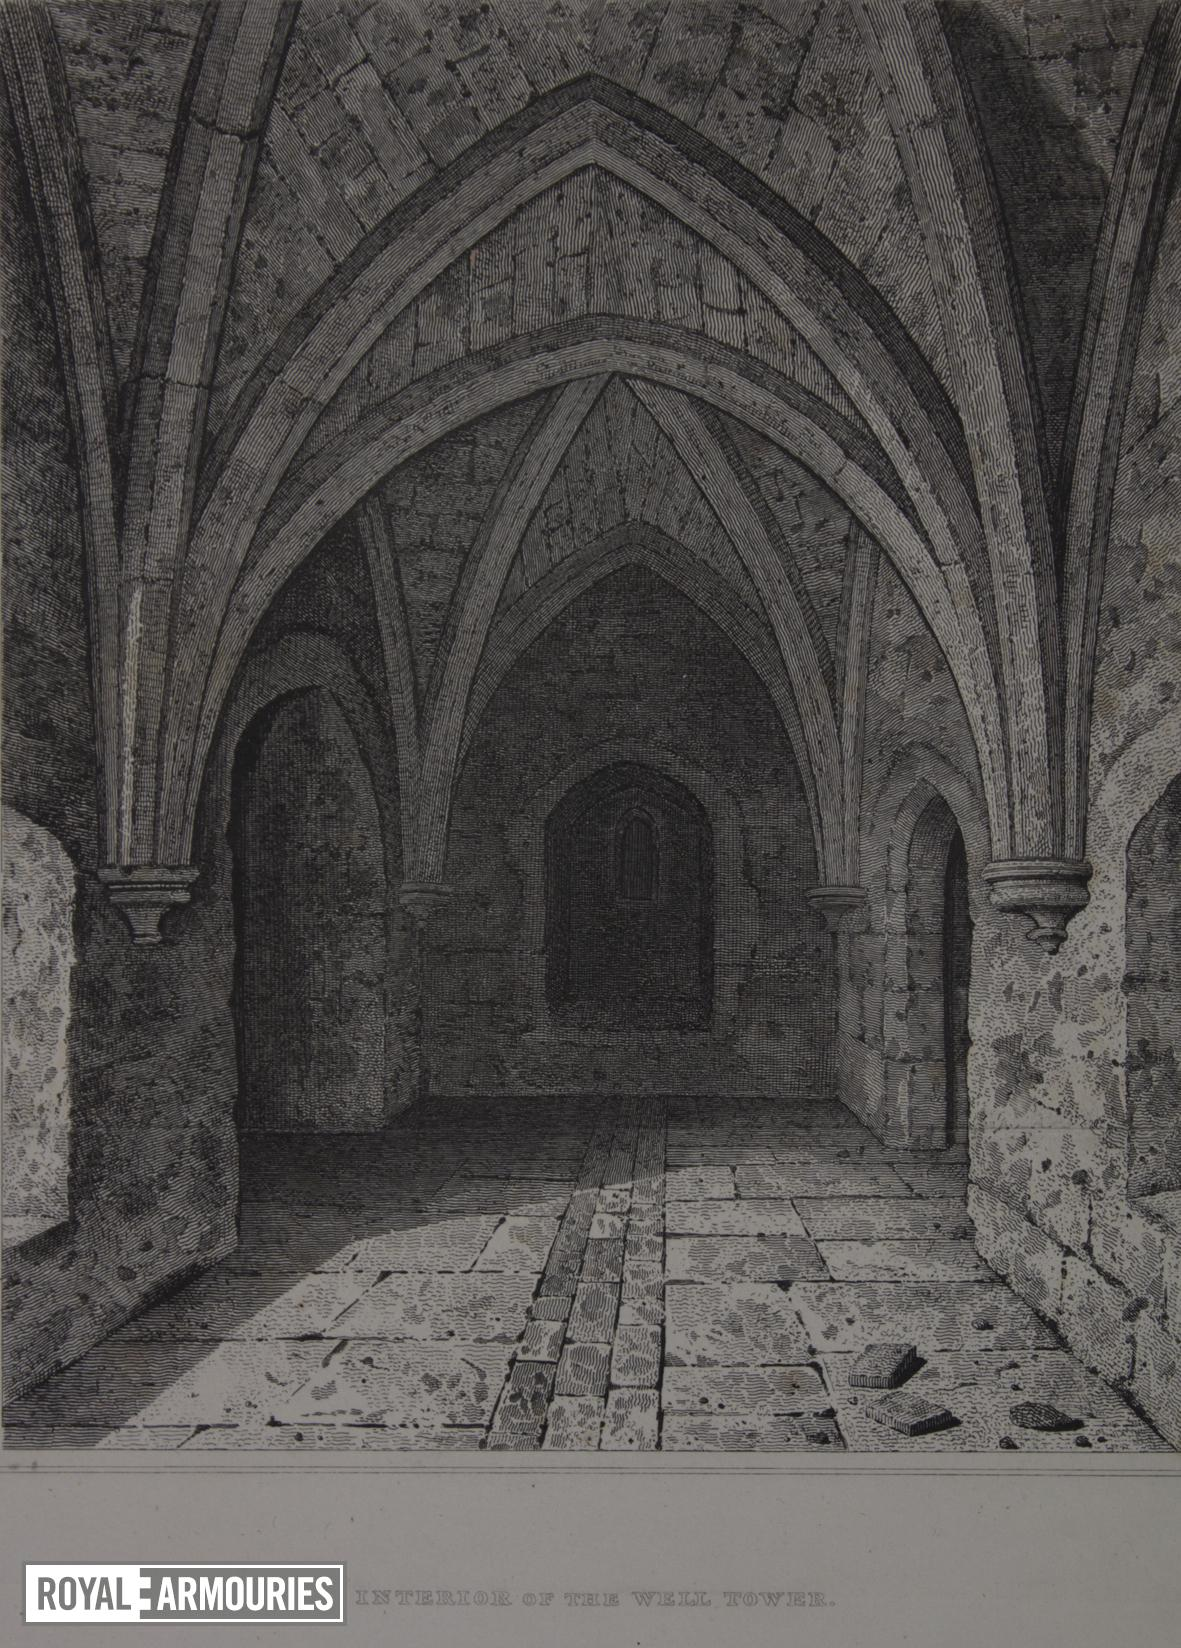 Print 'Interior of the Well Tower', Tower of London, about 1820.